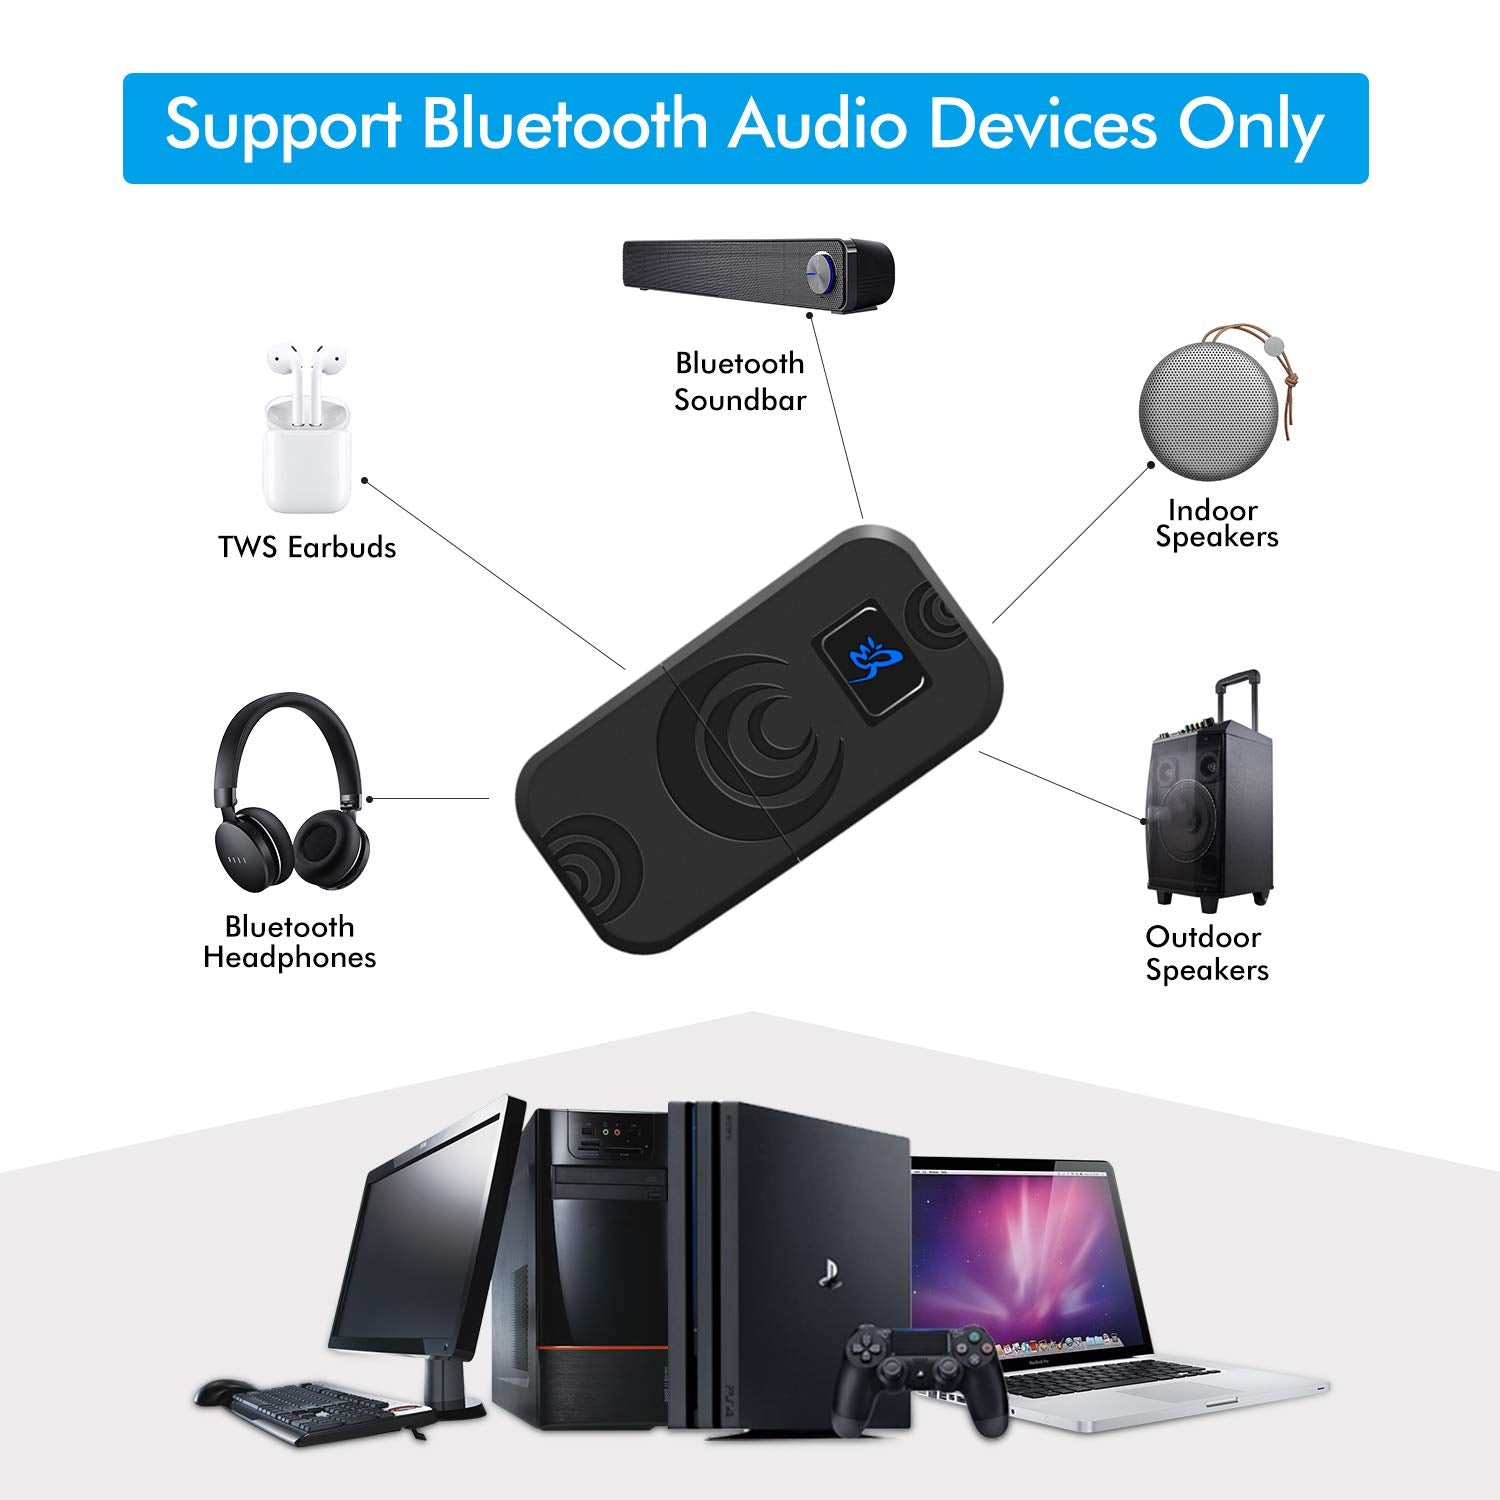 Olclss Wireless Bluetooth Adapter Usb Bluetooth Dongle Support Voice C Onpick